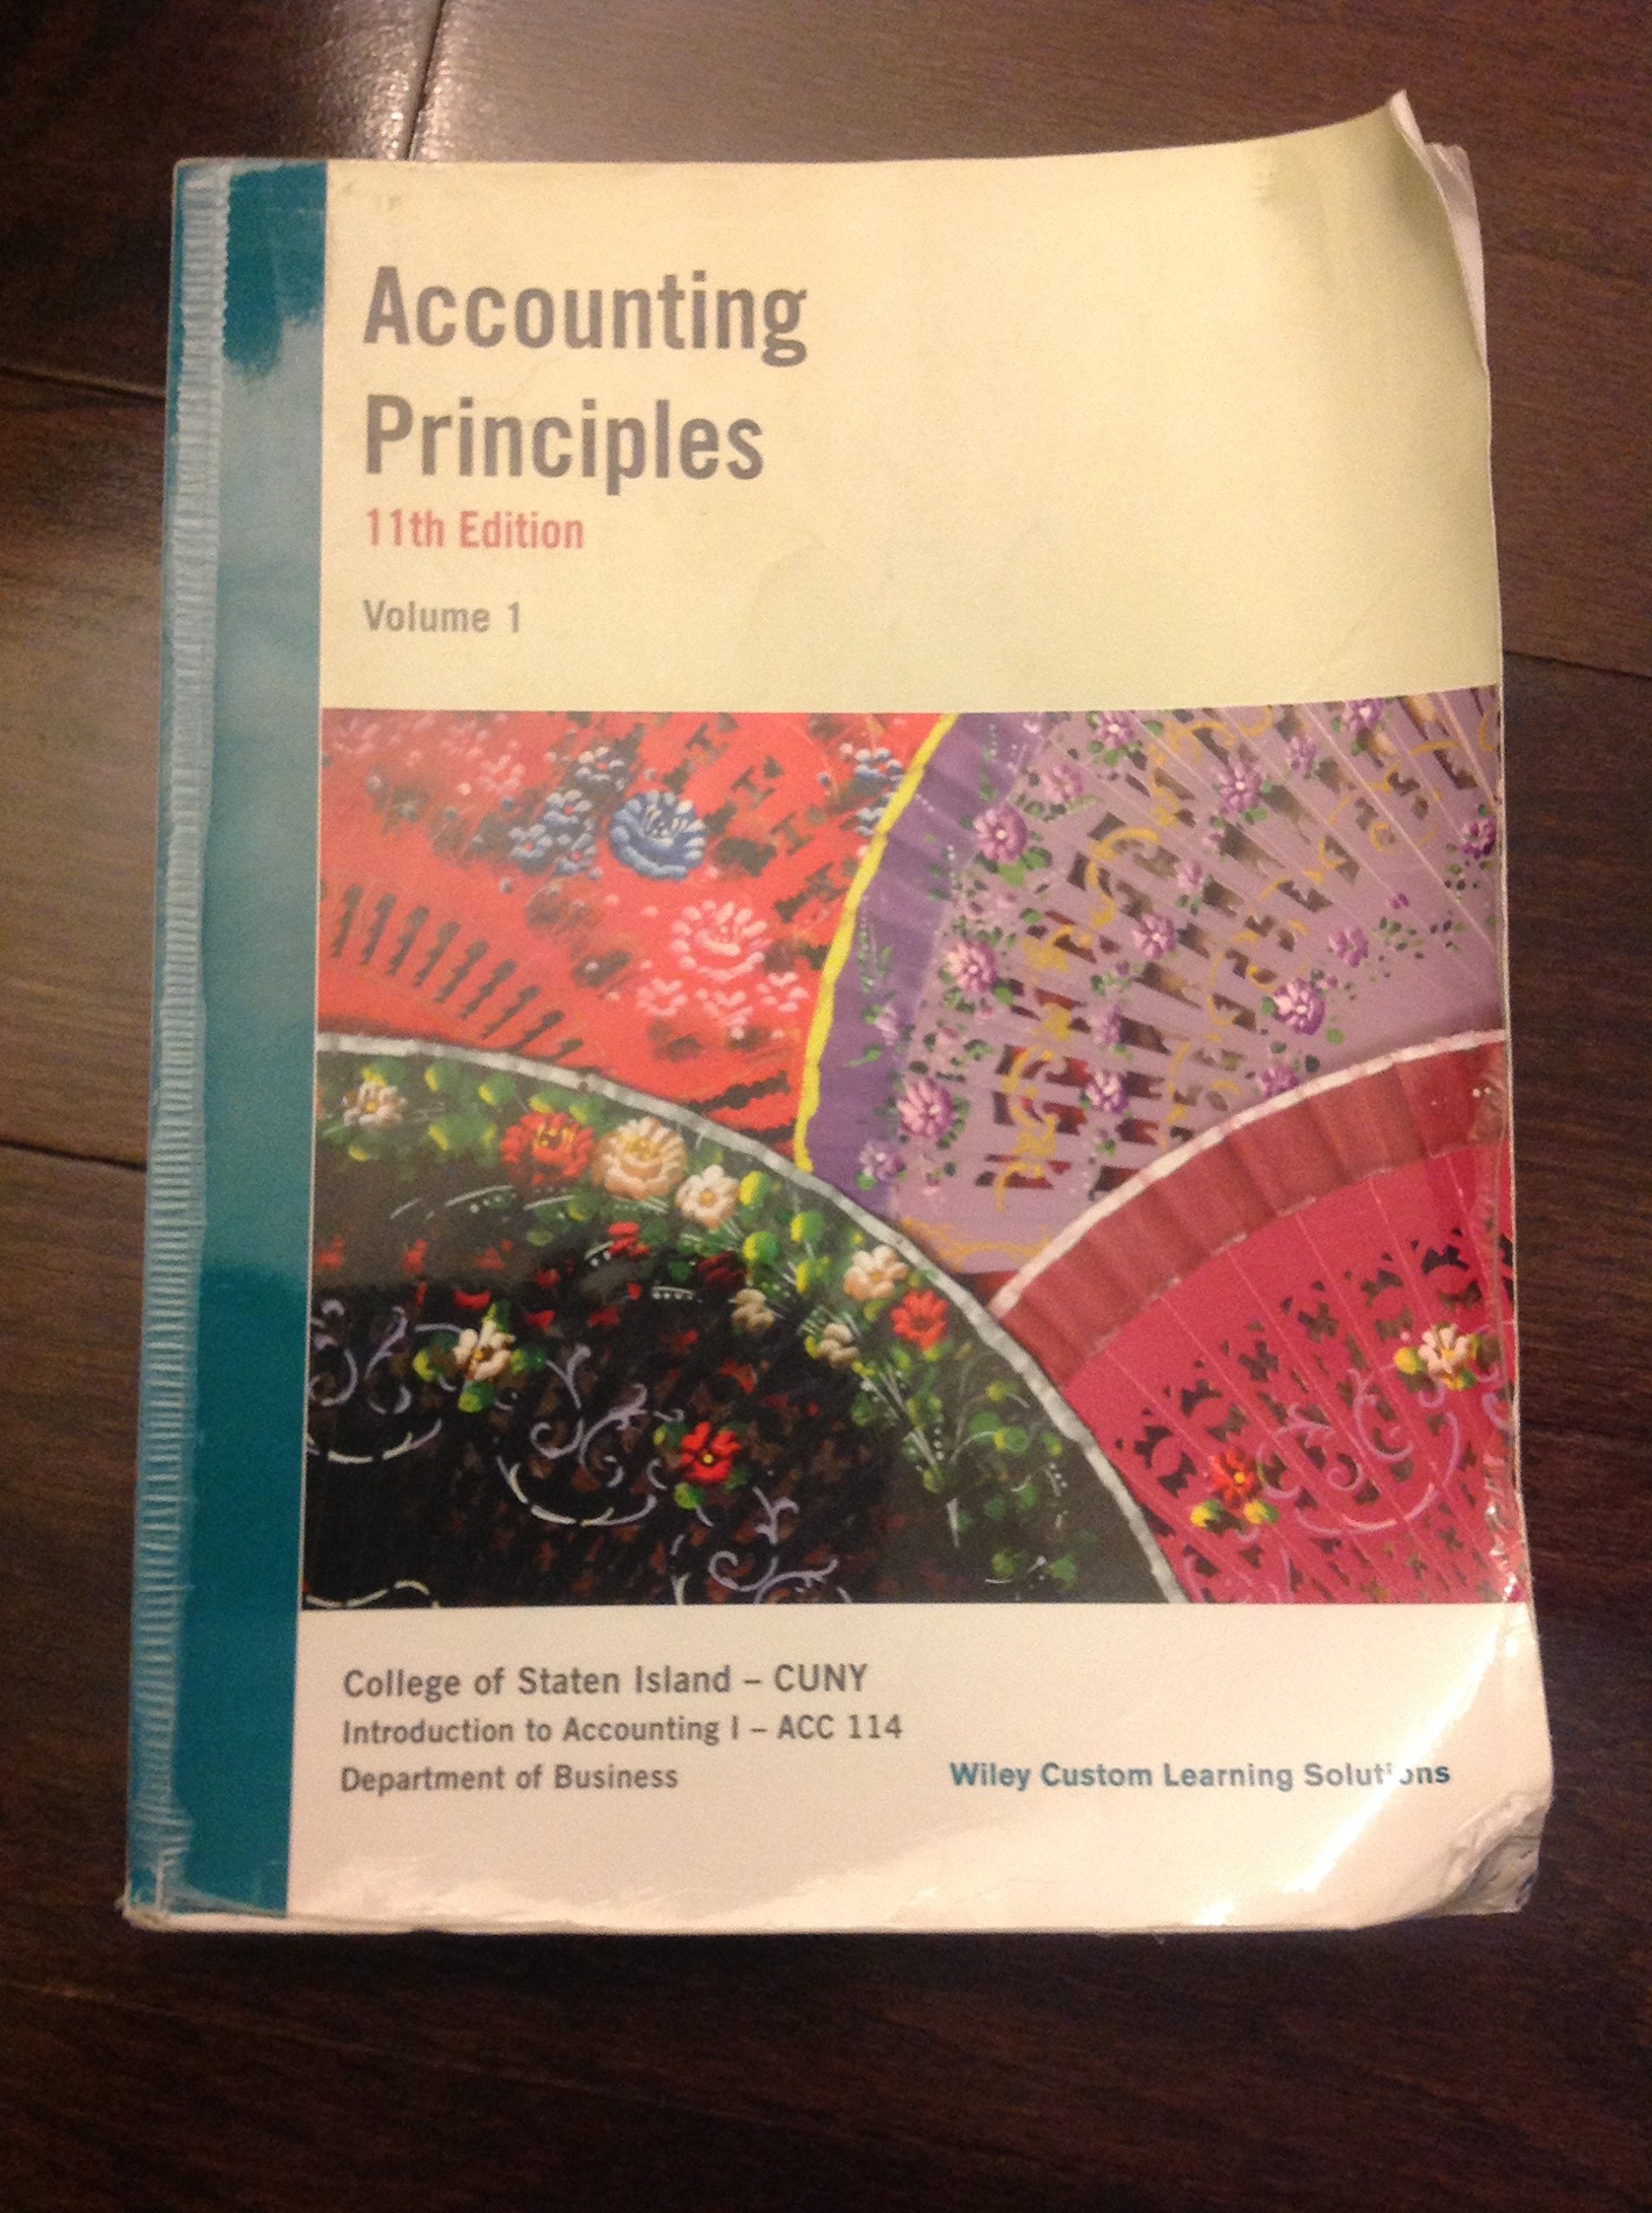 Accounting principles 11th edition volume 1 cpa jerry j weygandt accounting principles 11th edition volume 1 cpa jerry j weygandt phd cpa paul d kimmel phd cpa donald e kieso phd 9781118789933 amazon books fandeluxe Gallery